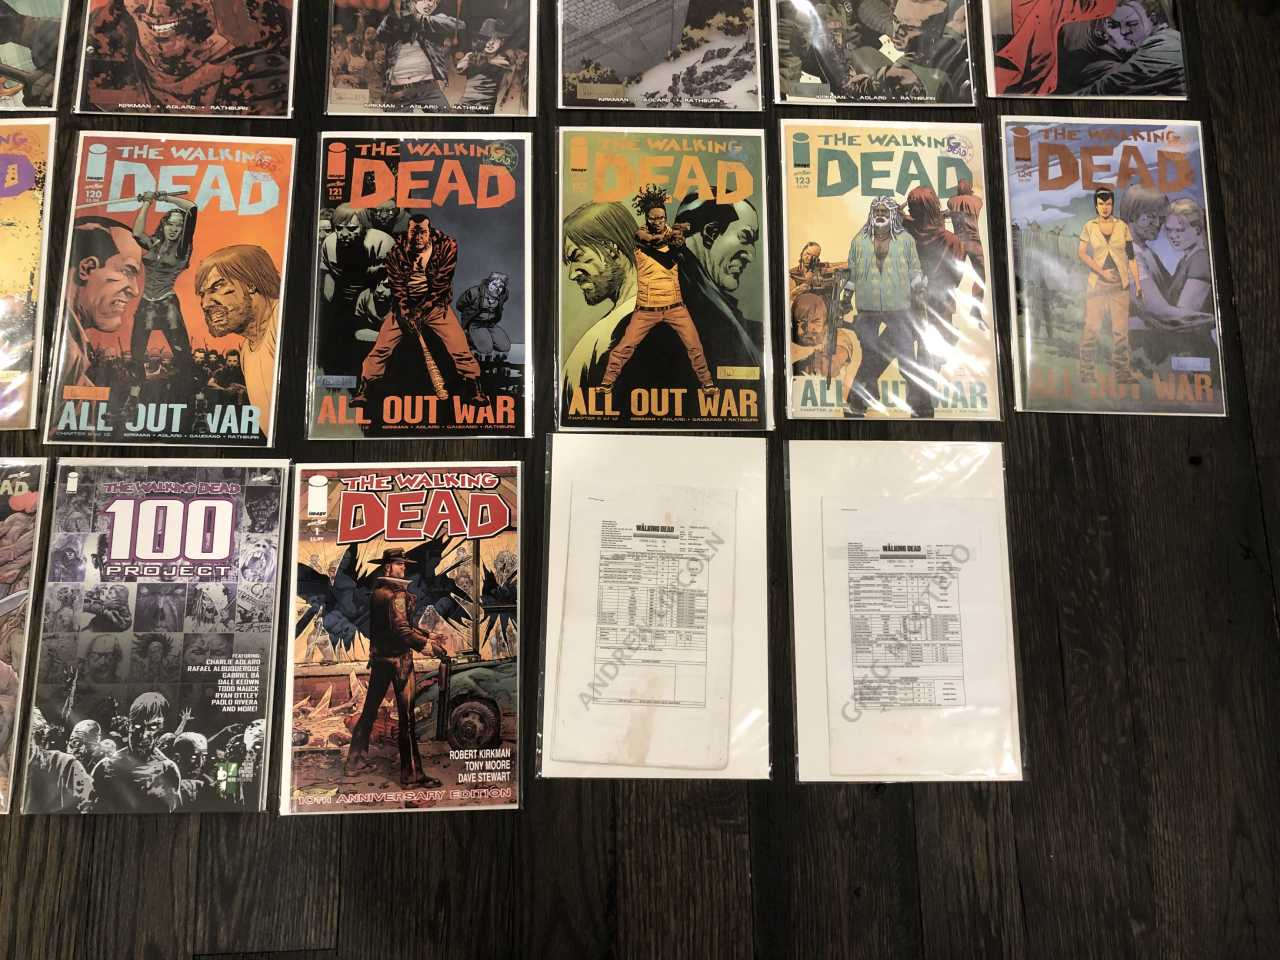 Walking Dead Comic Books for Sale - Lower Right